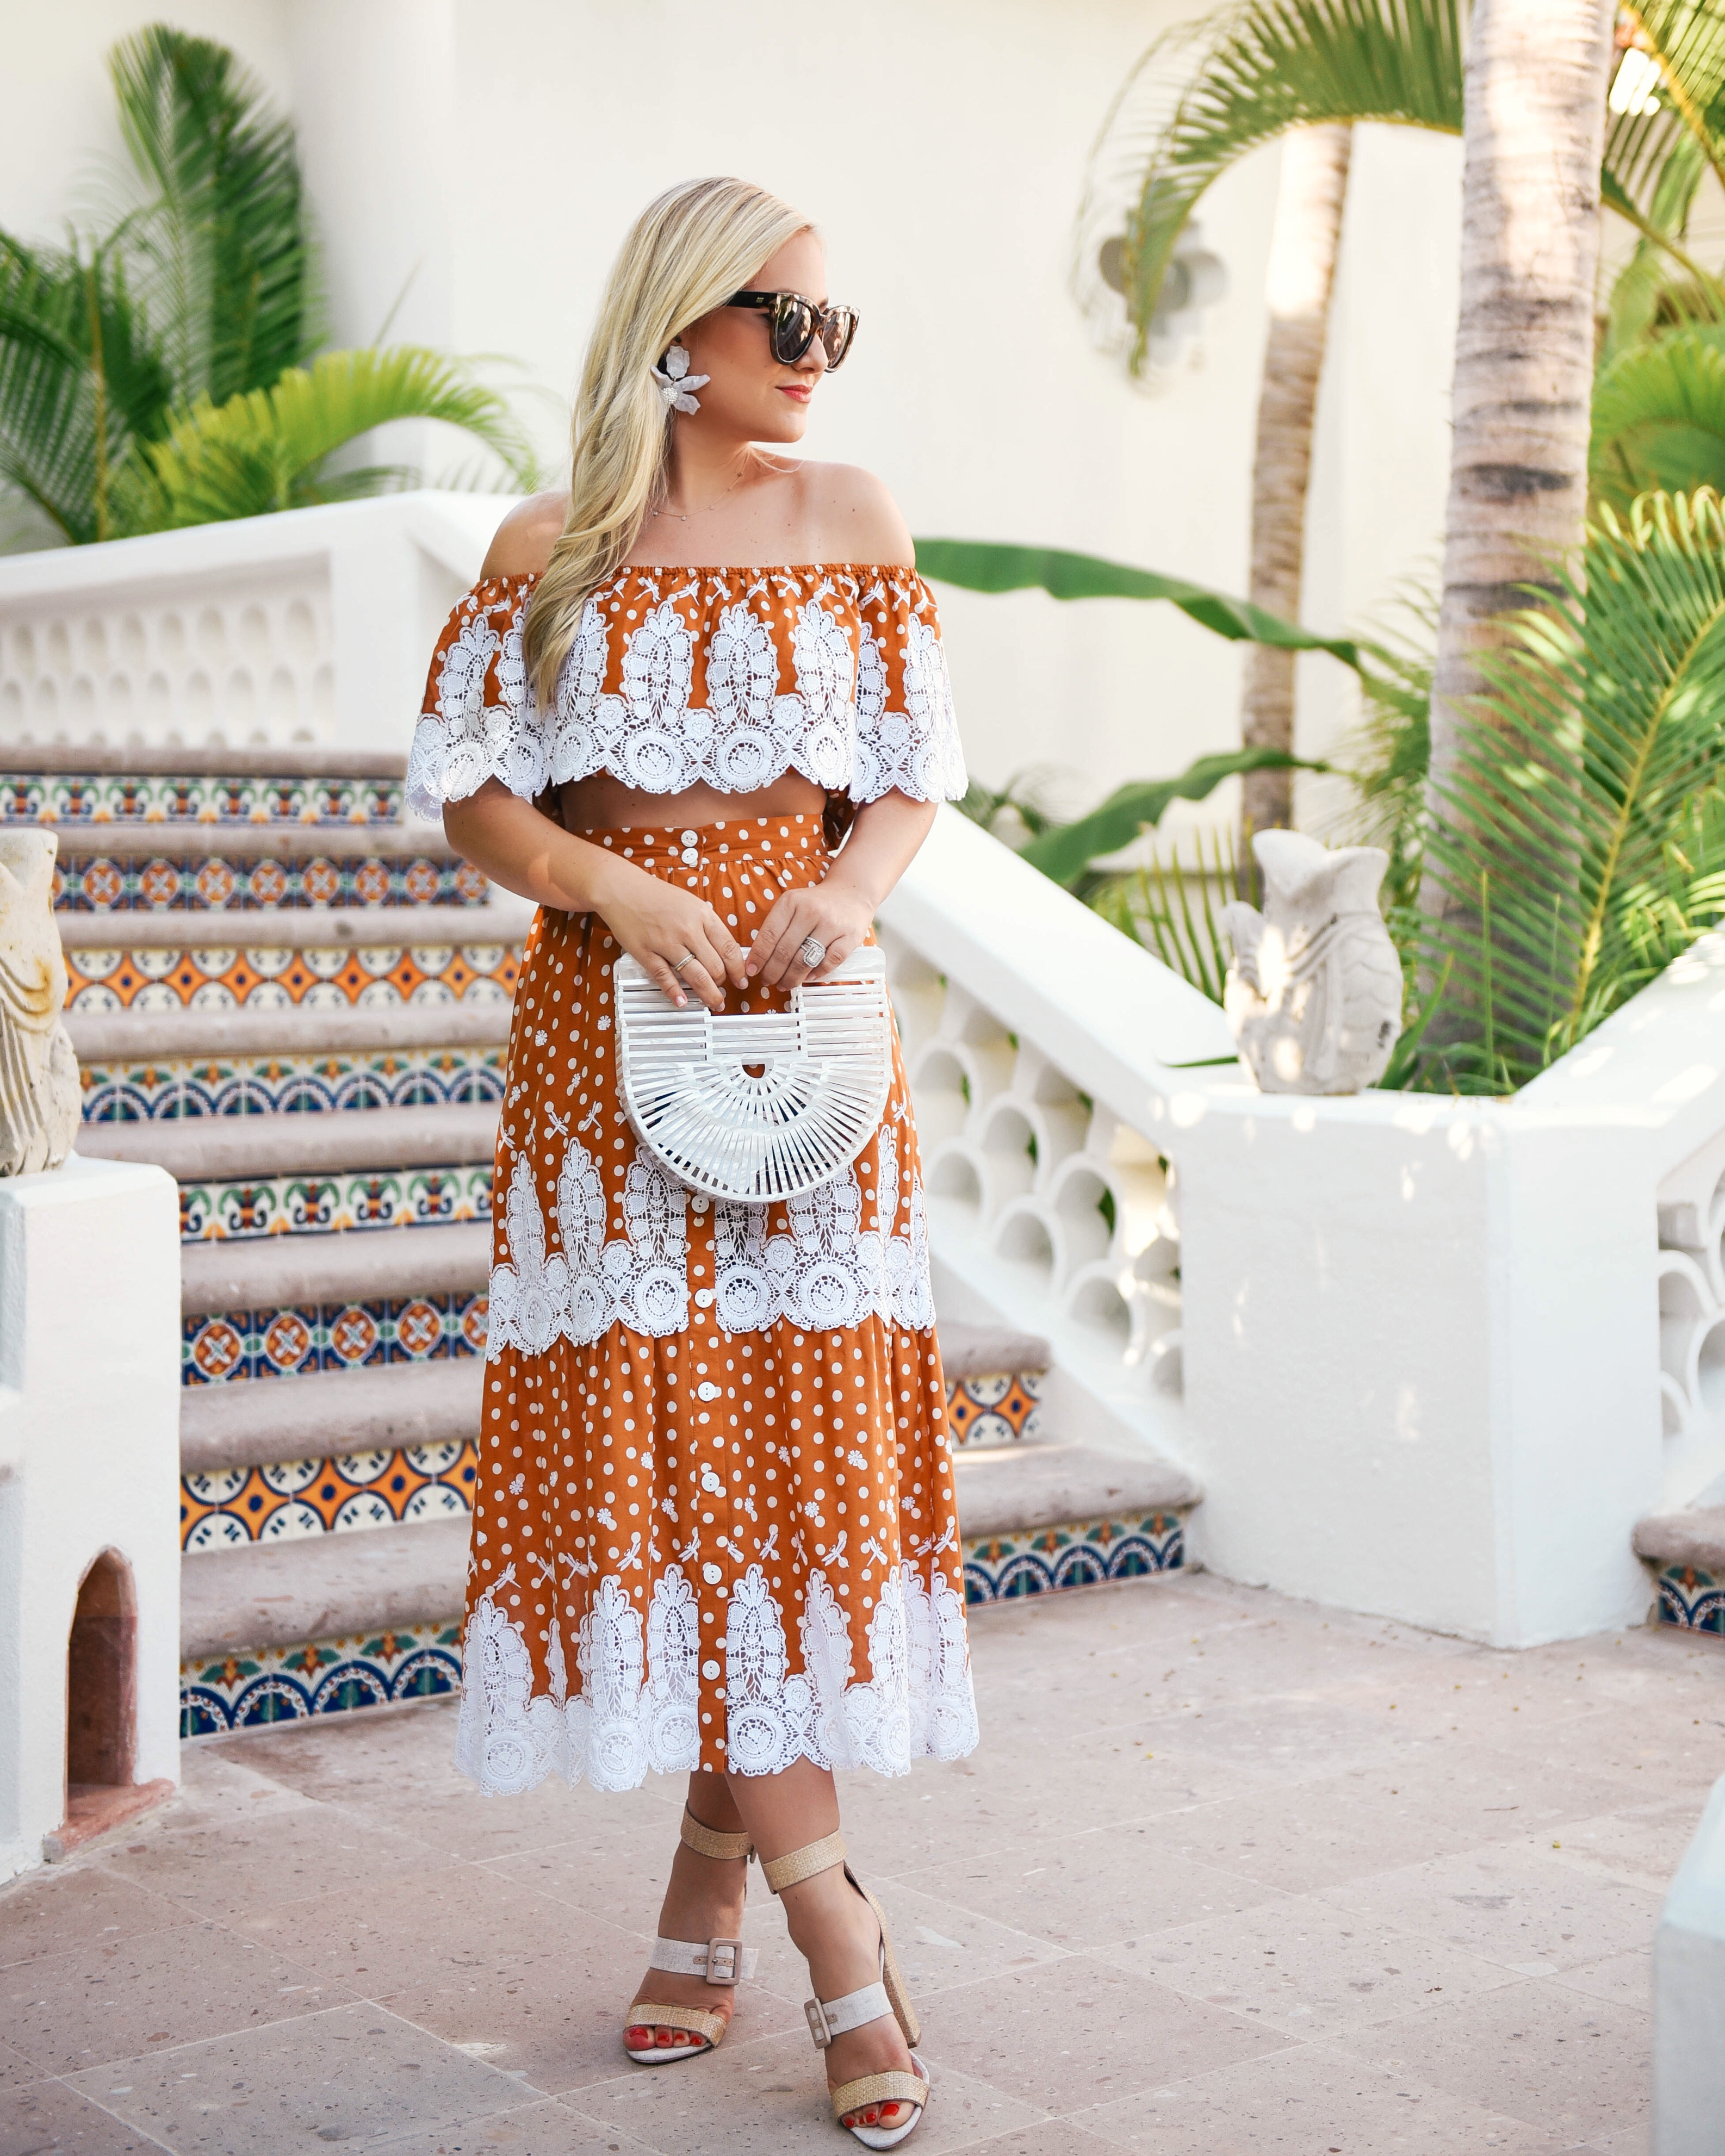 Miguelina-Shopbop-Matching-Set-Lo-Murphy-Miguelina-Orange-Set-Lace-Dress-Cabo